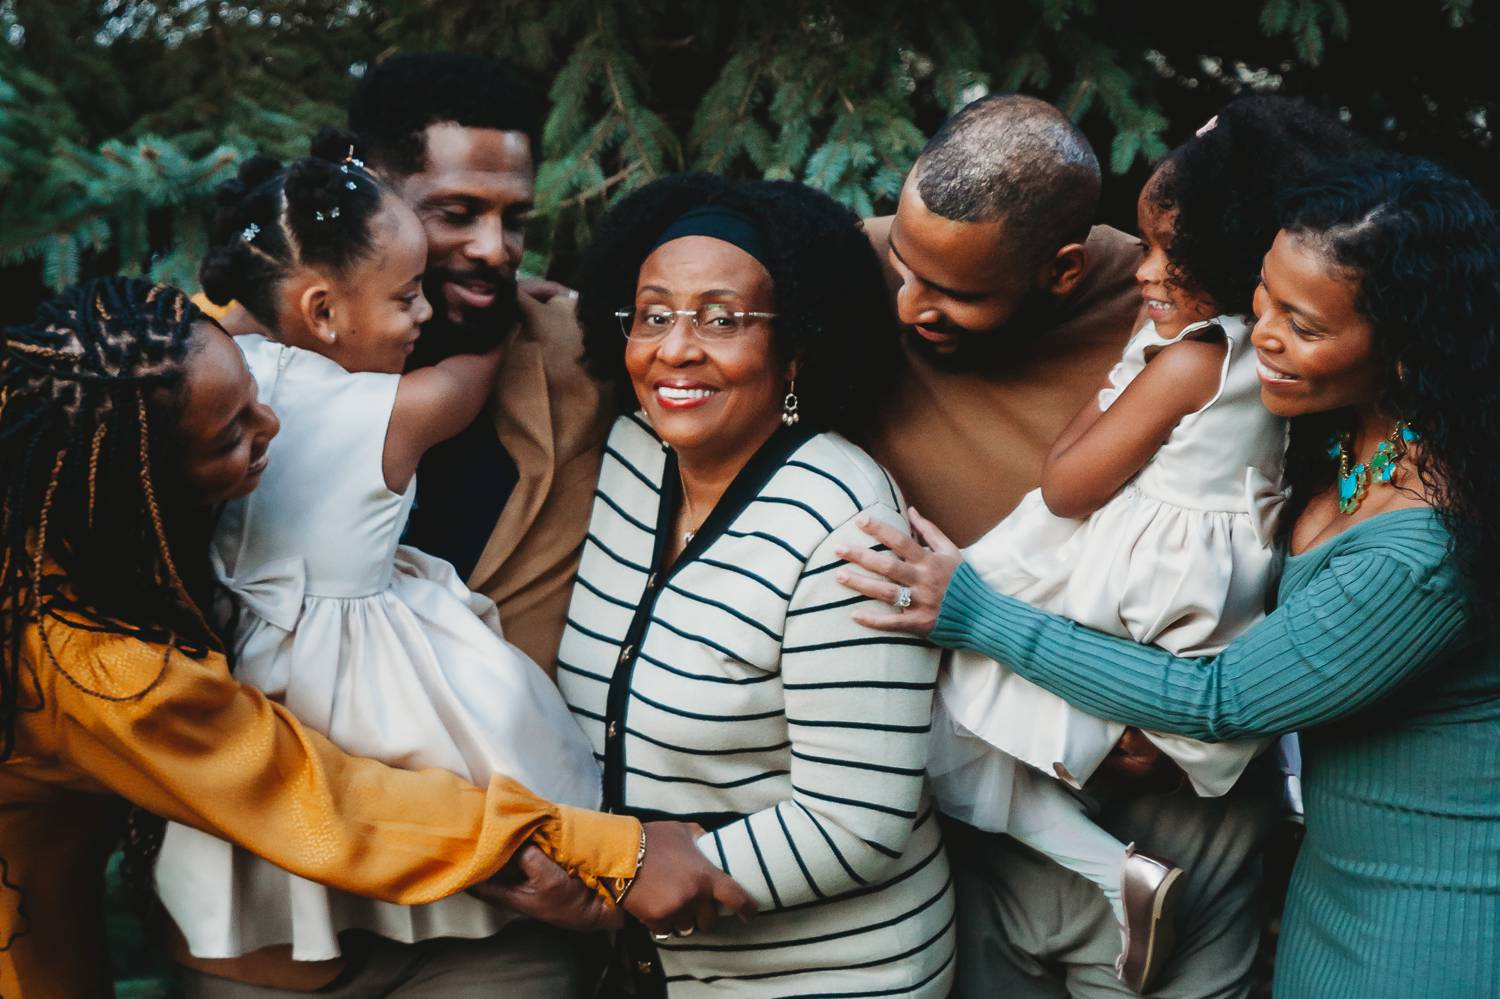 A smiling Black family gathers around the matriarch and hugs one another close